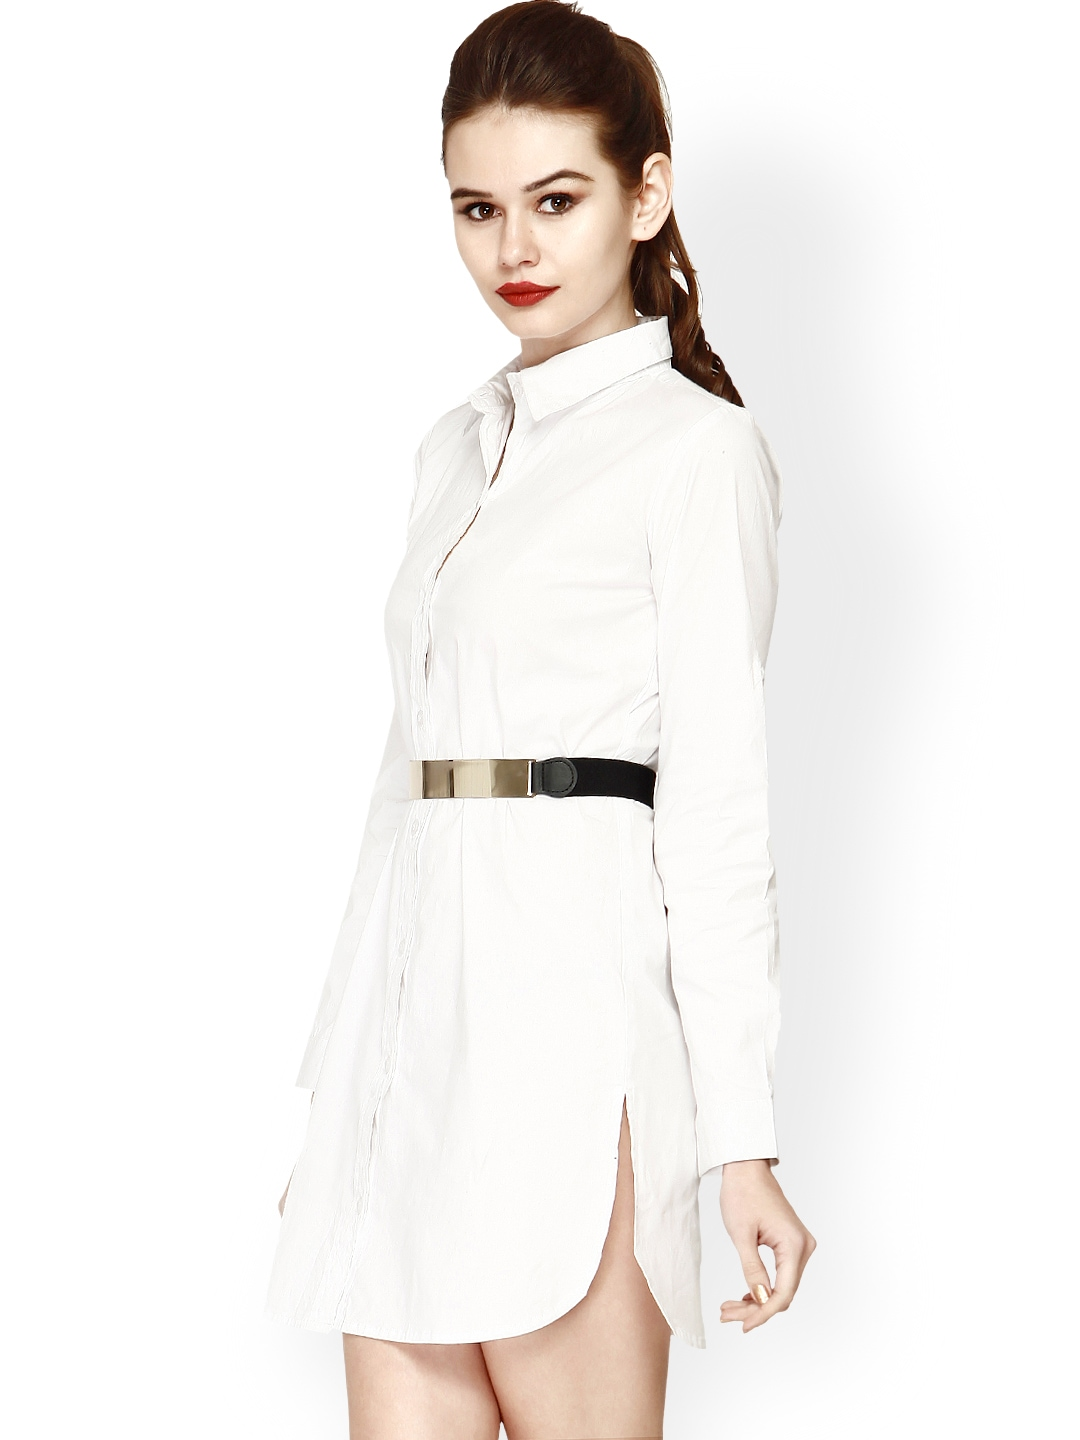 Myntra faballey women white shirt dress 707831 buy Buy white dress shirt